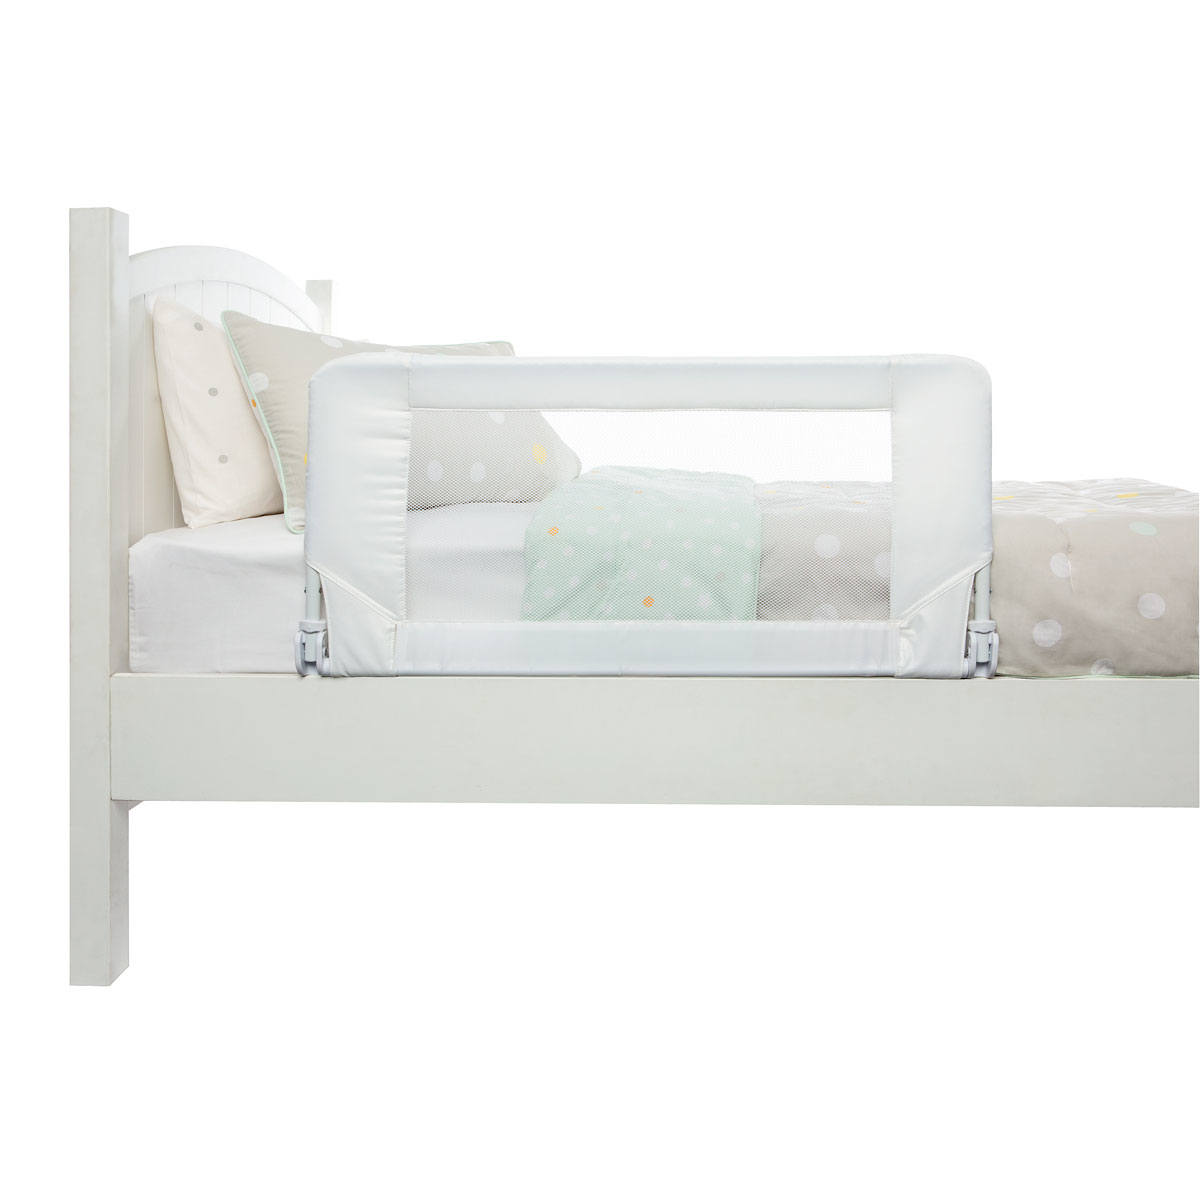 Folding Bed Rail | Kmart